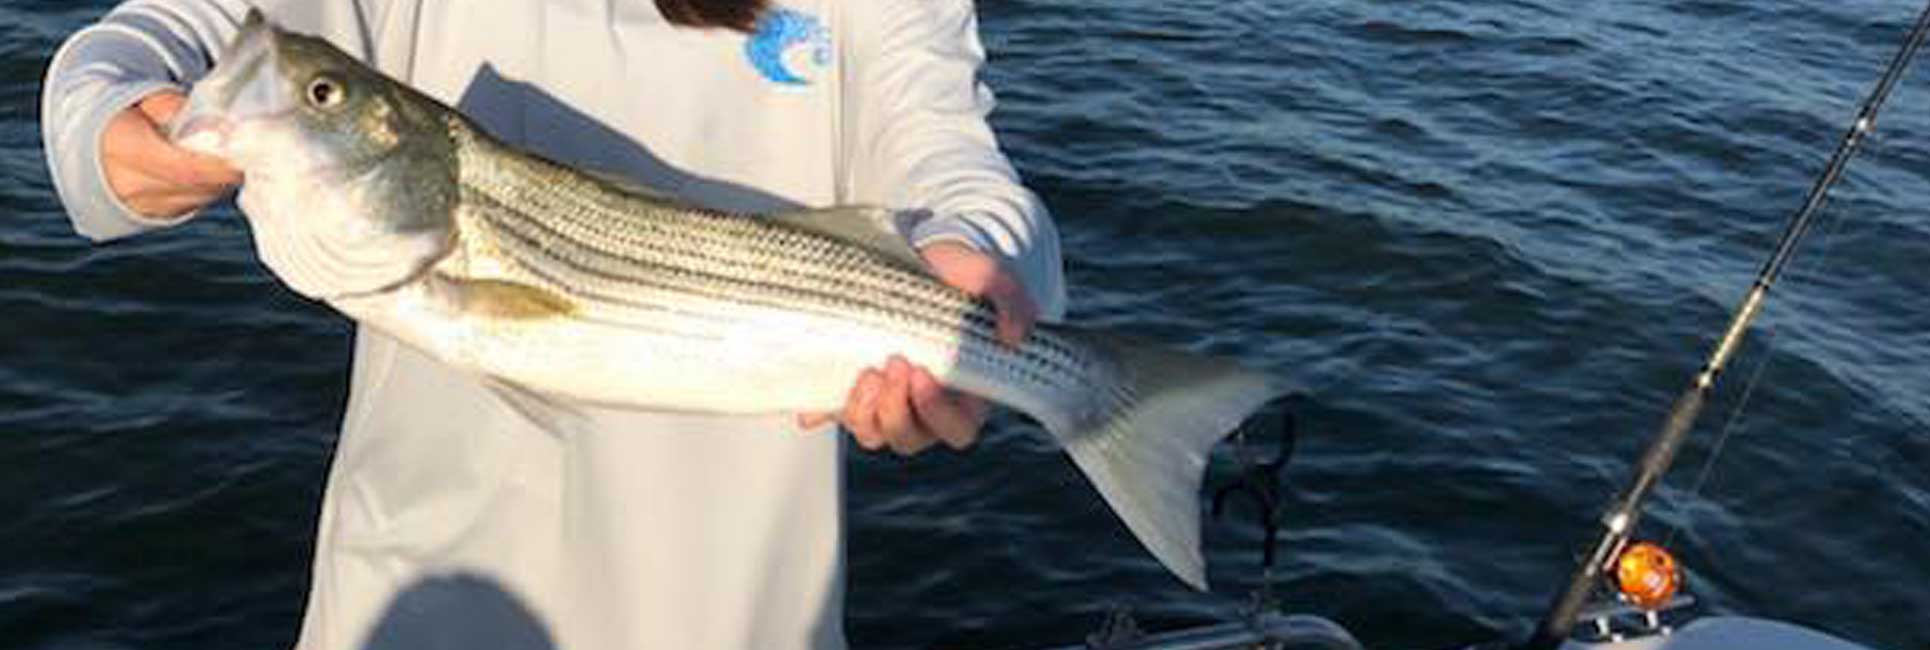 hybrid striped bass caught by people fishing